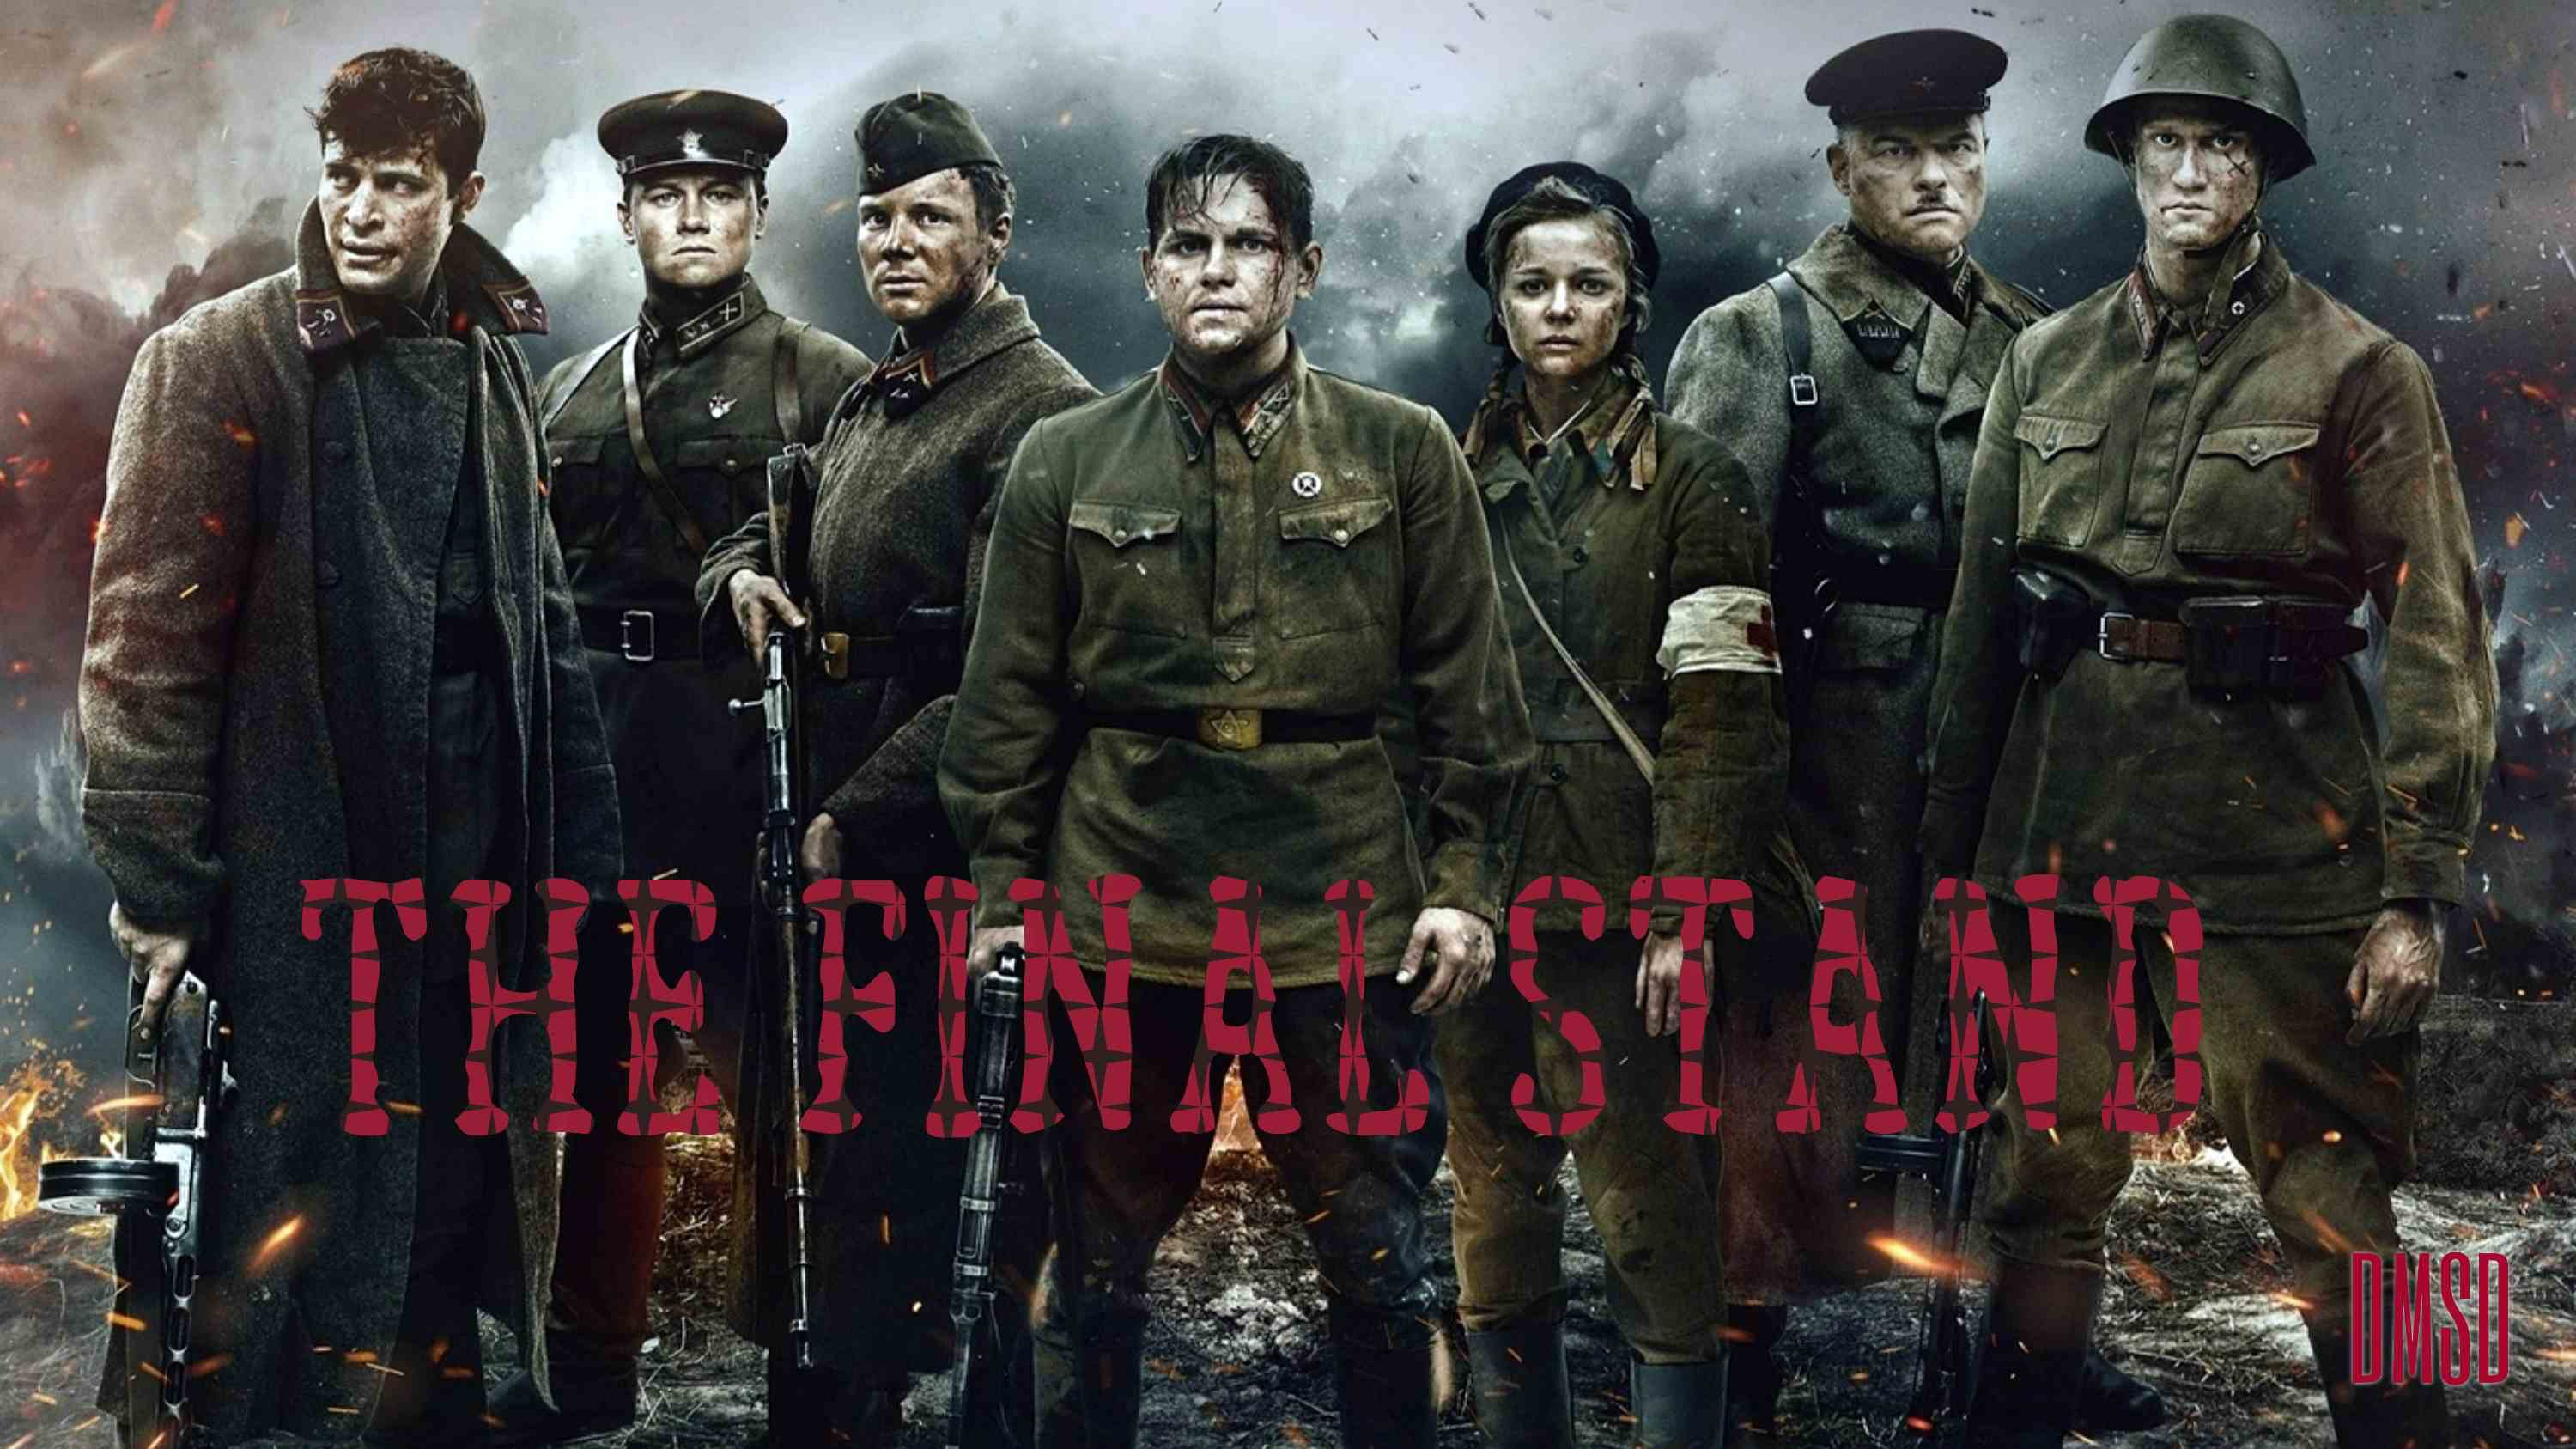 The Final Stand [2020]